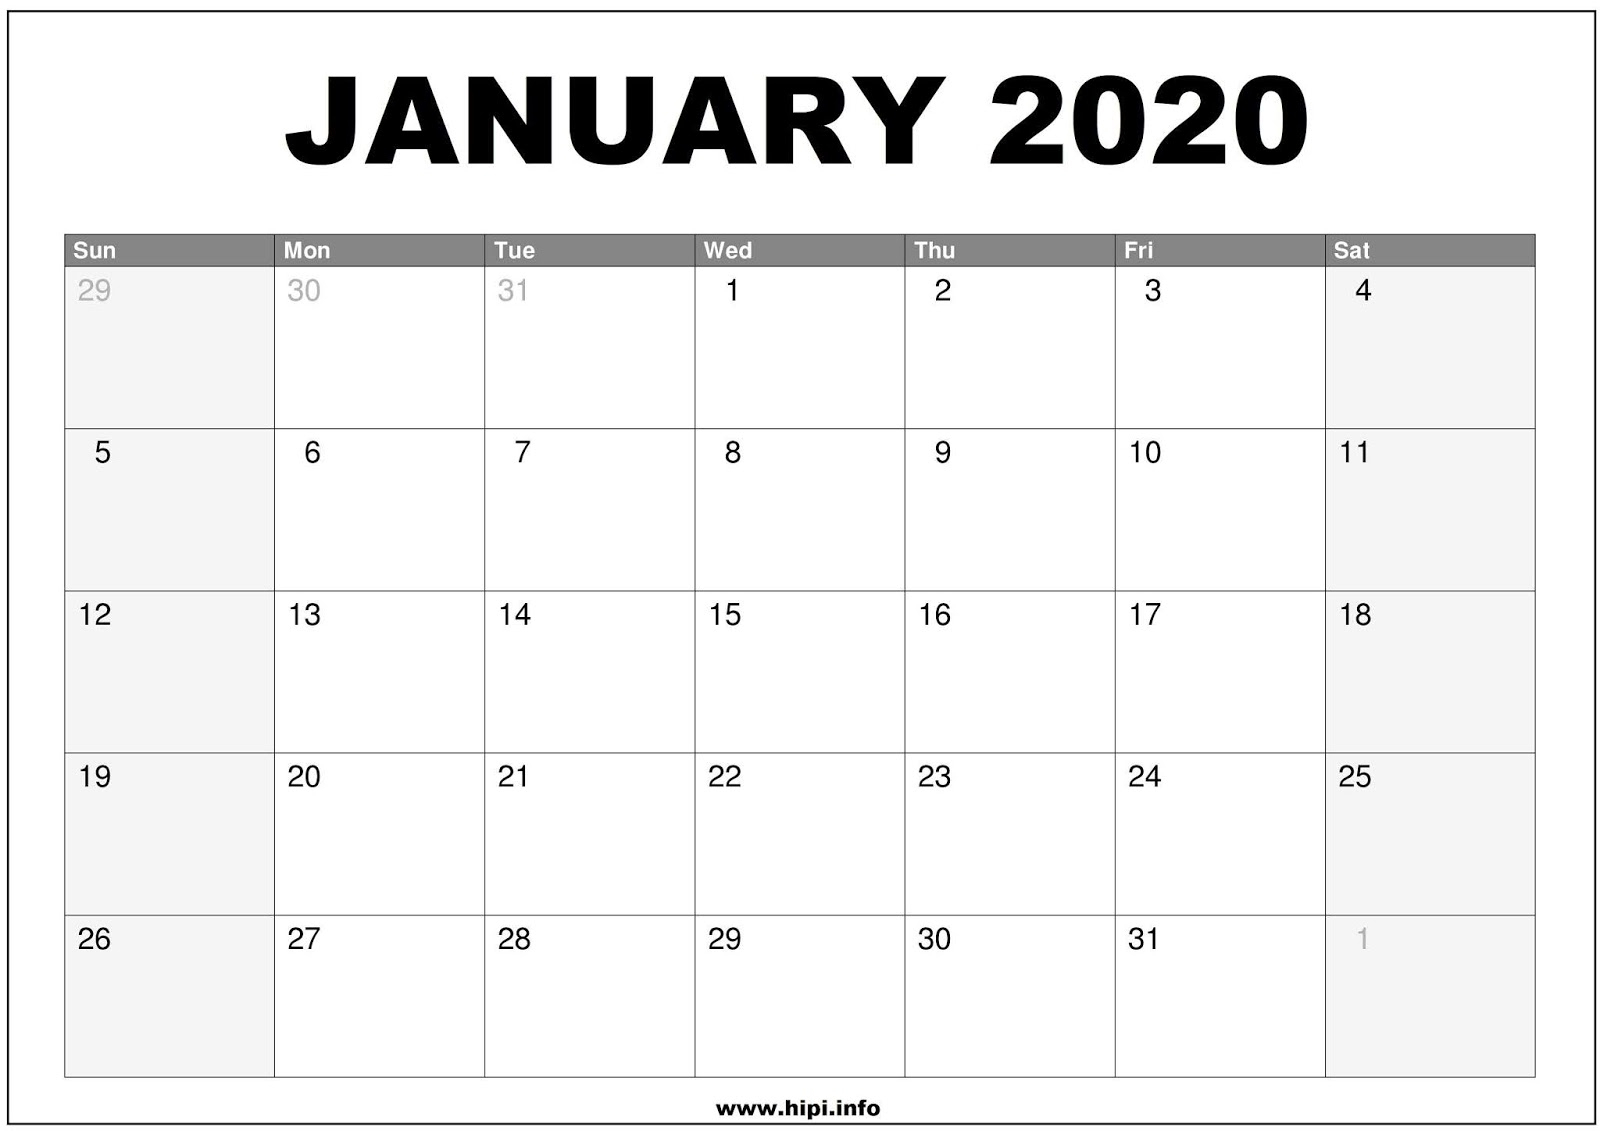 January 2020 Calendar Wallpapers  Wallpaper Cave intended for Calendarpedia January 2020